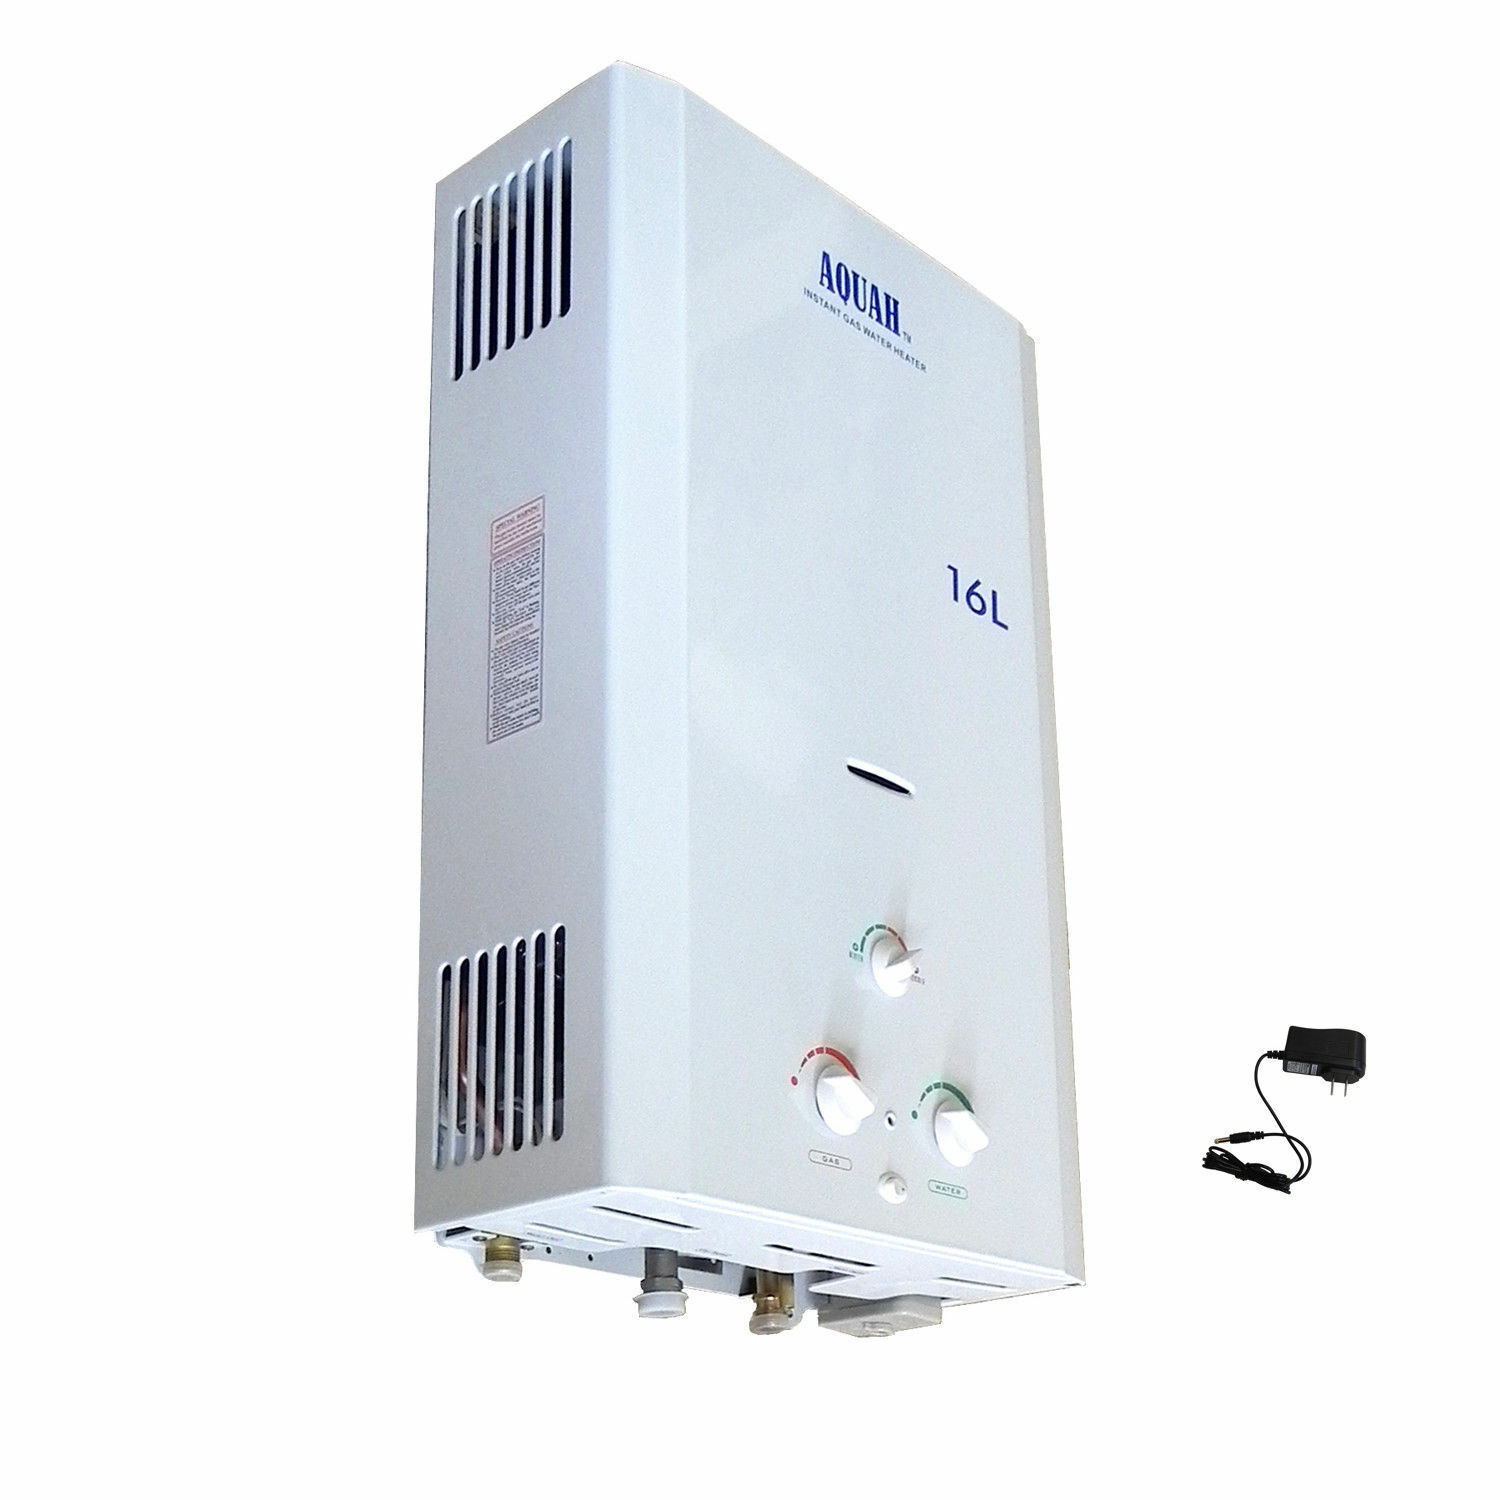 Aquah Indoor Natural Gas Tankless Water Heater 16l / 4.3 Gpm